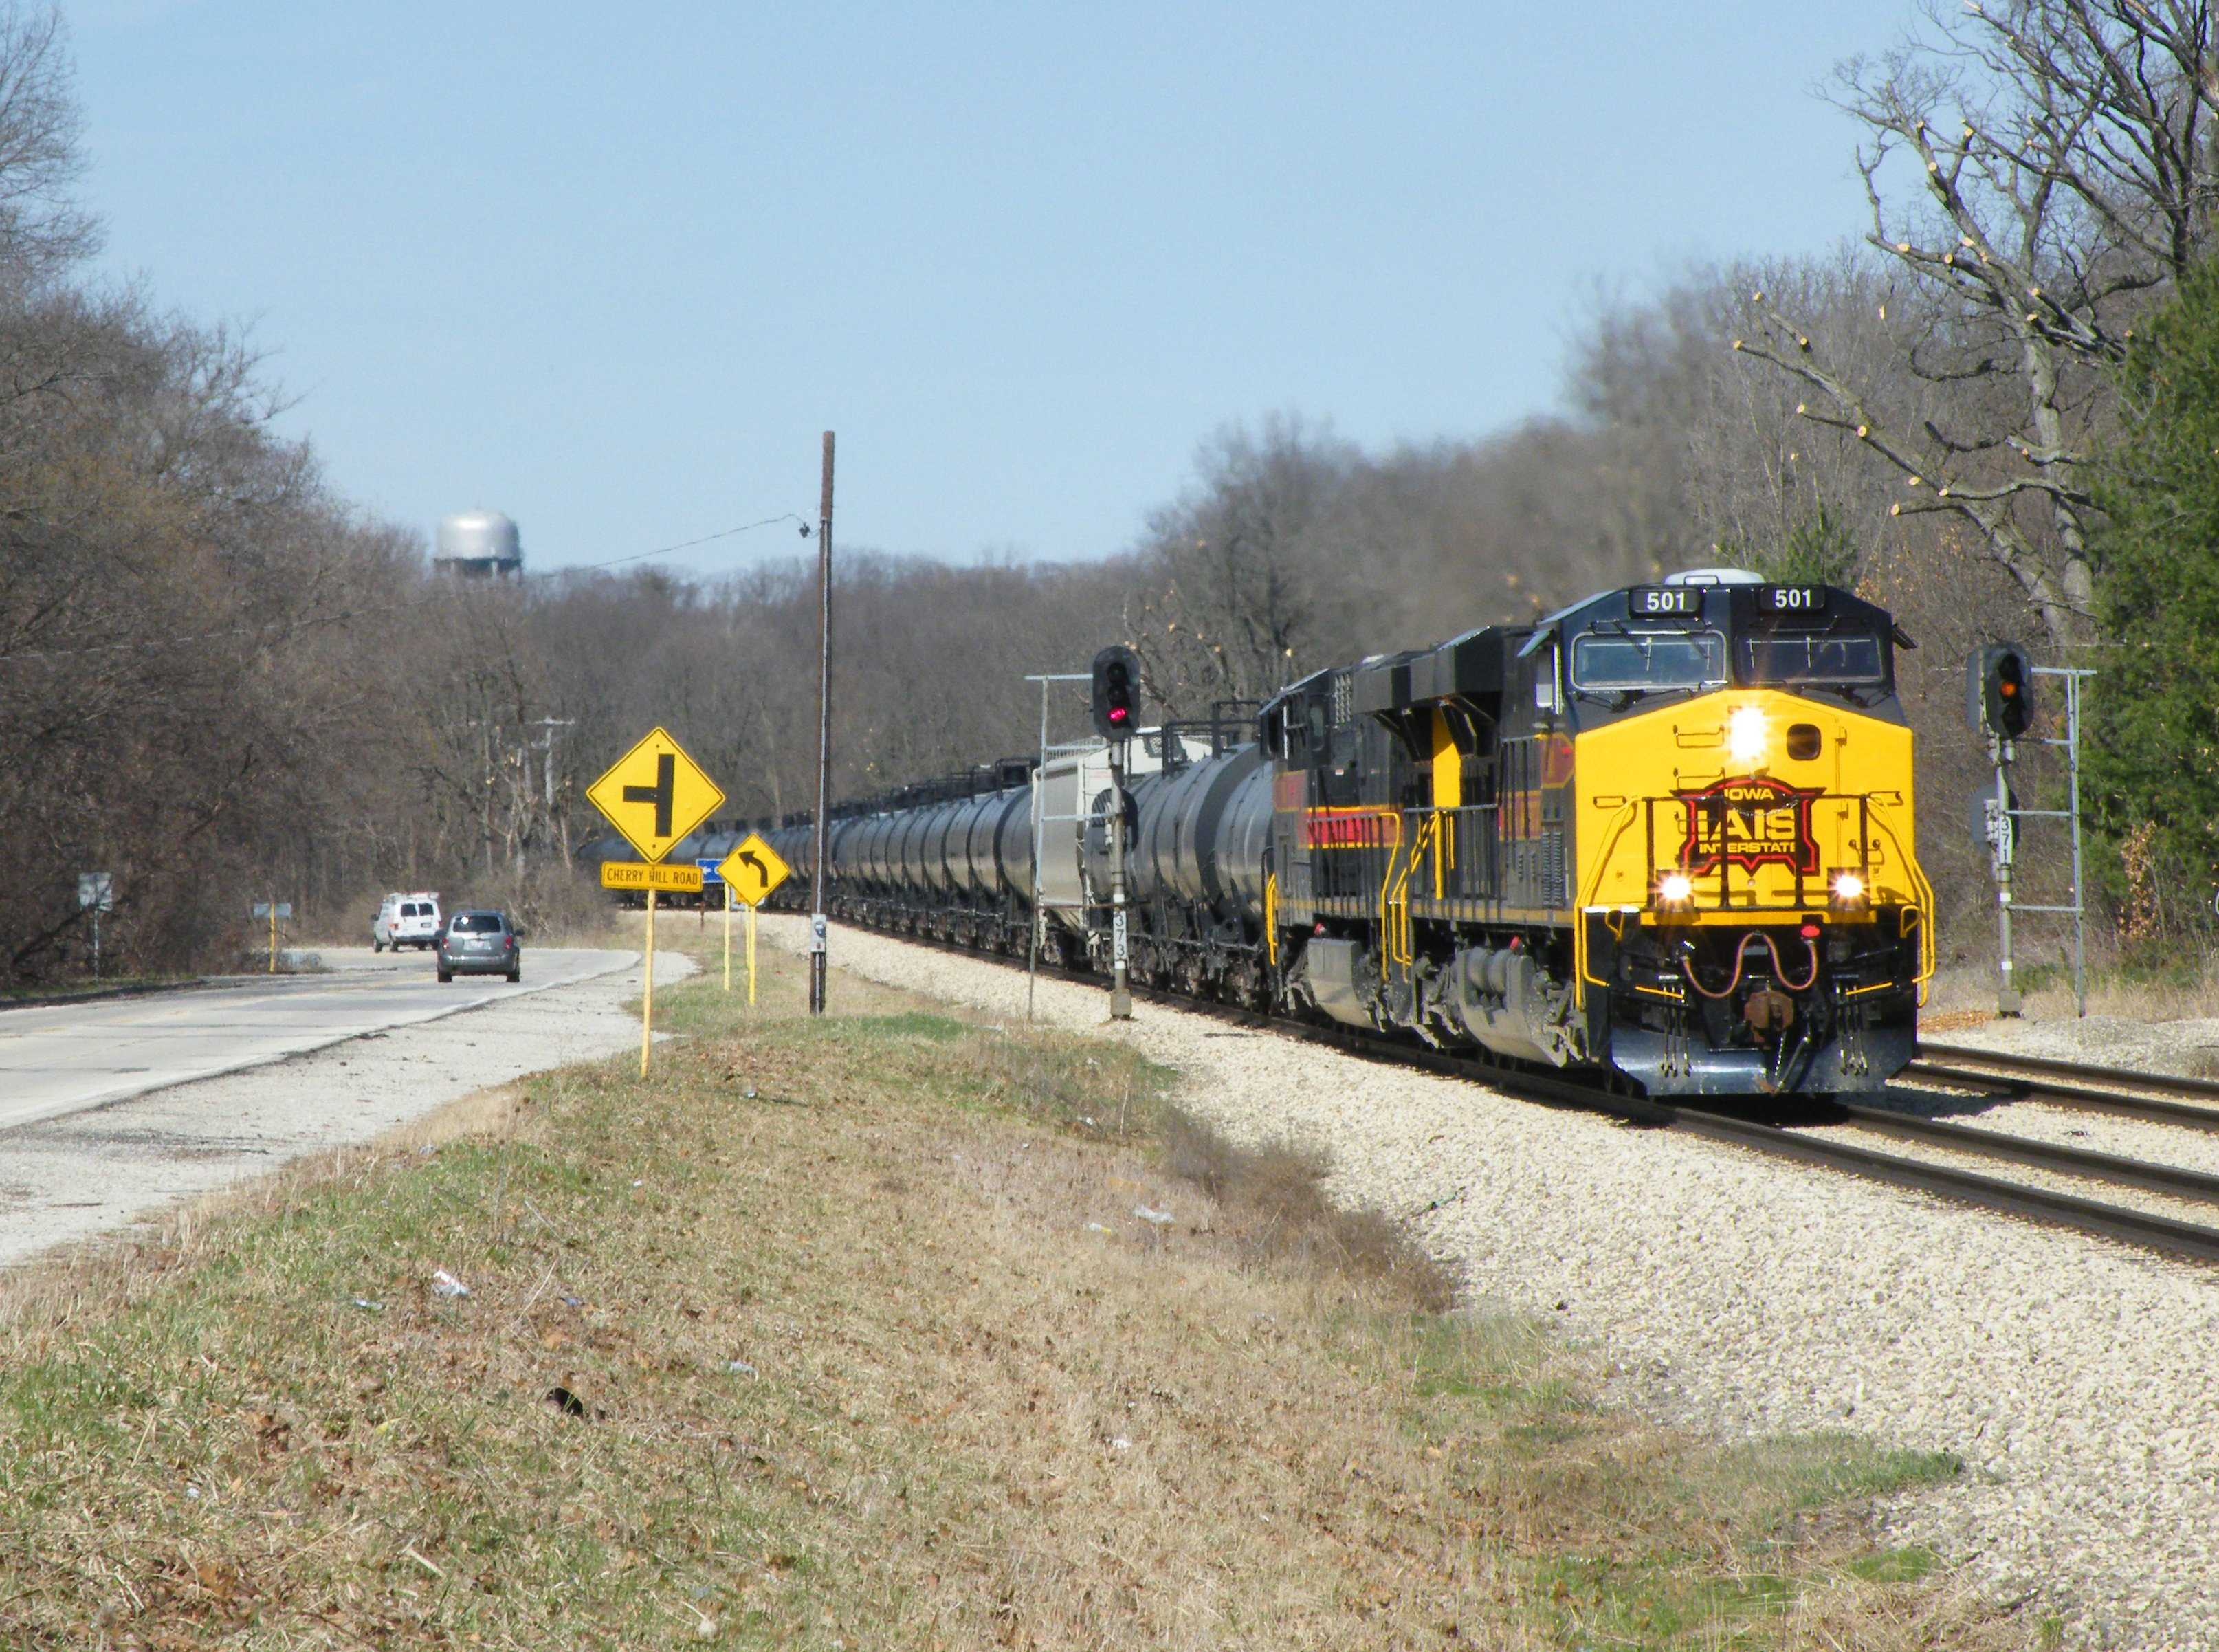 Iowa 501 and 508 are wide open thundering out of the Joliet river valley, following Rte 30 into New Lenox.